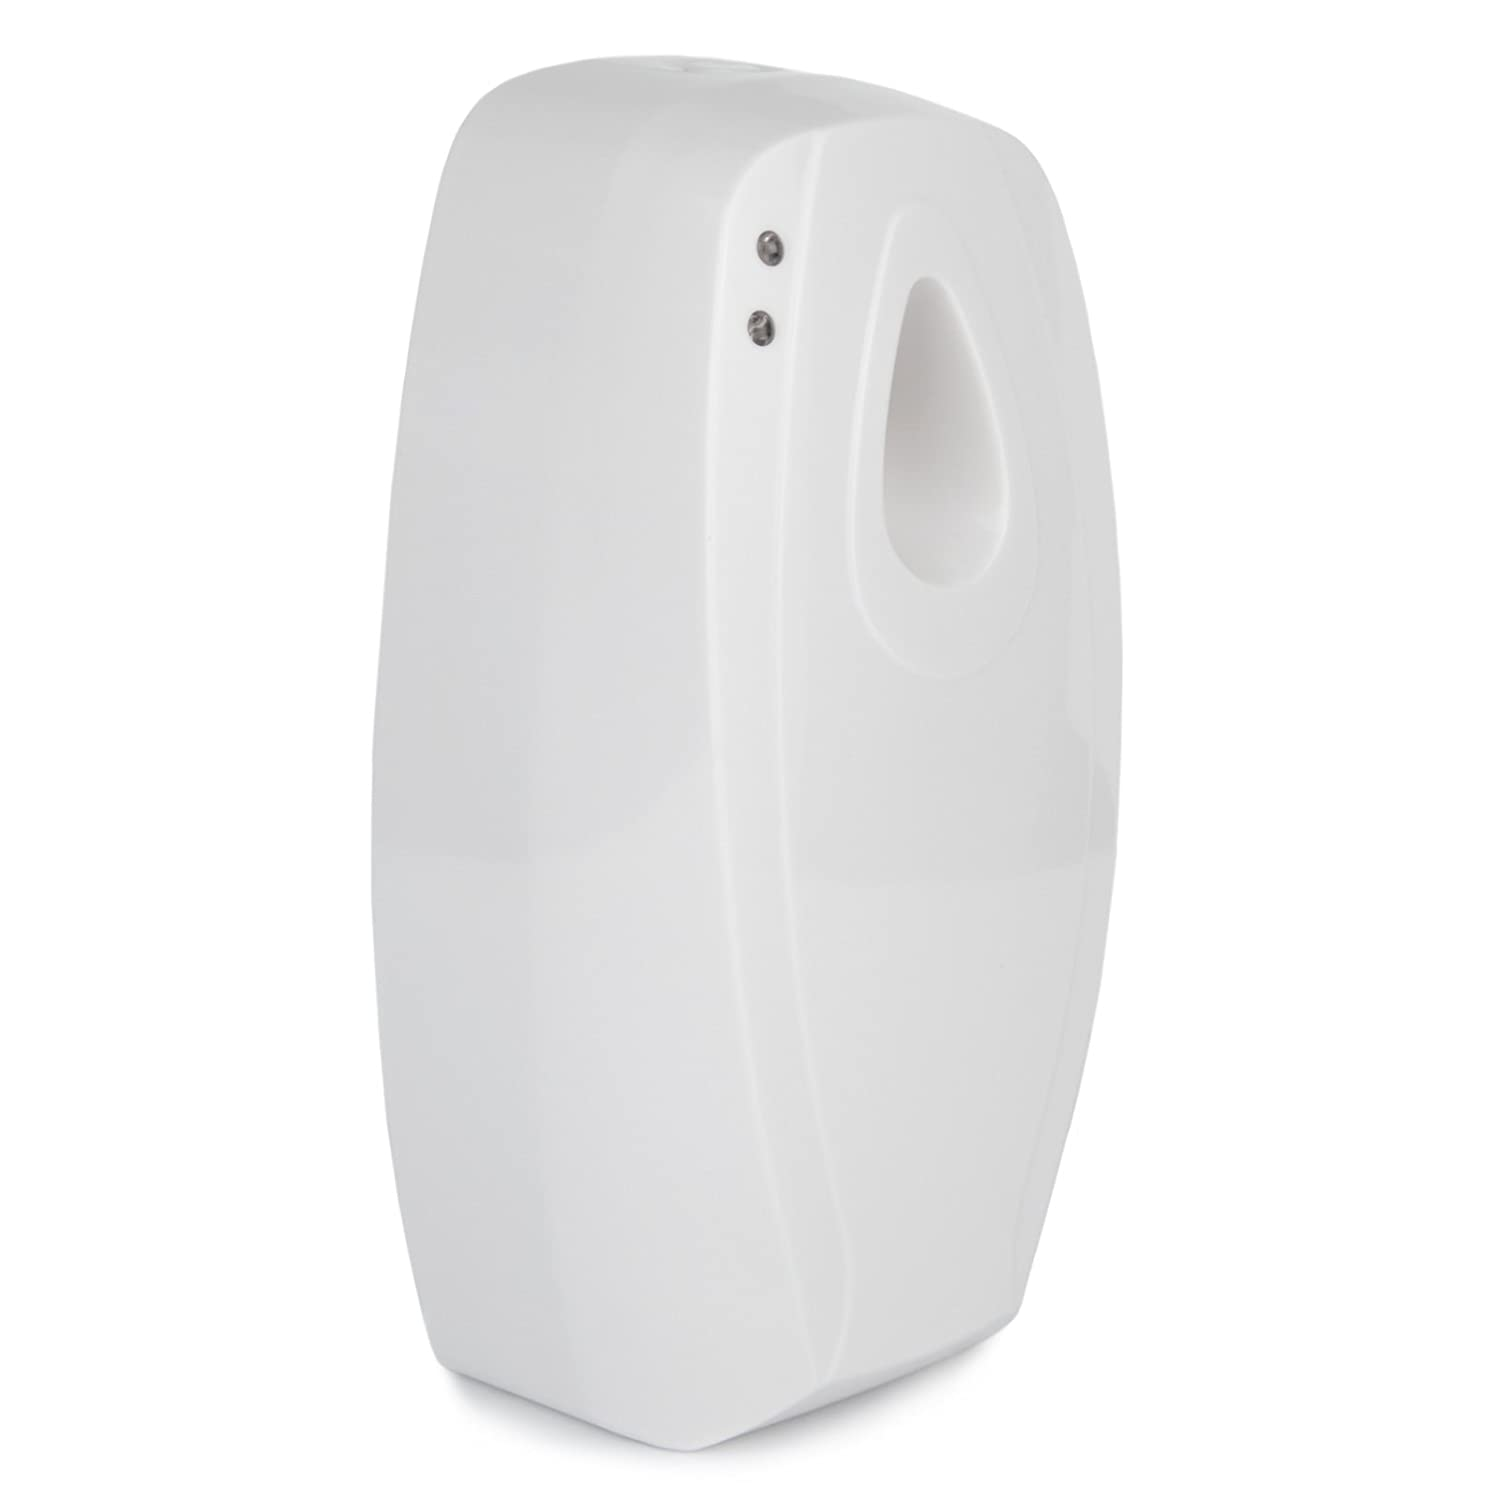 Automatic Air Freshener - Day/Night Sensor - Commercial Bathroom Toilet - White AIRSENZ